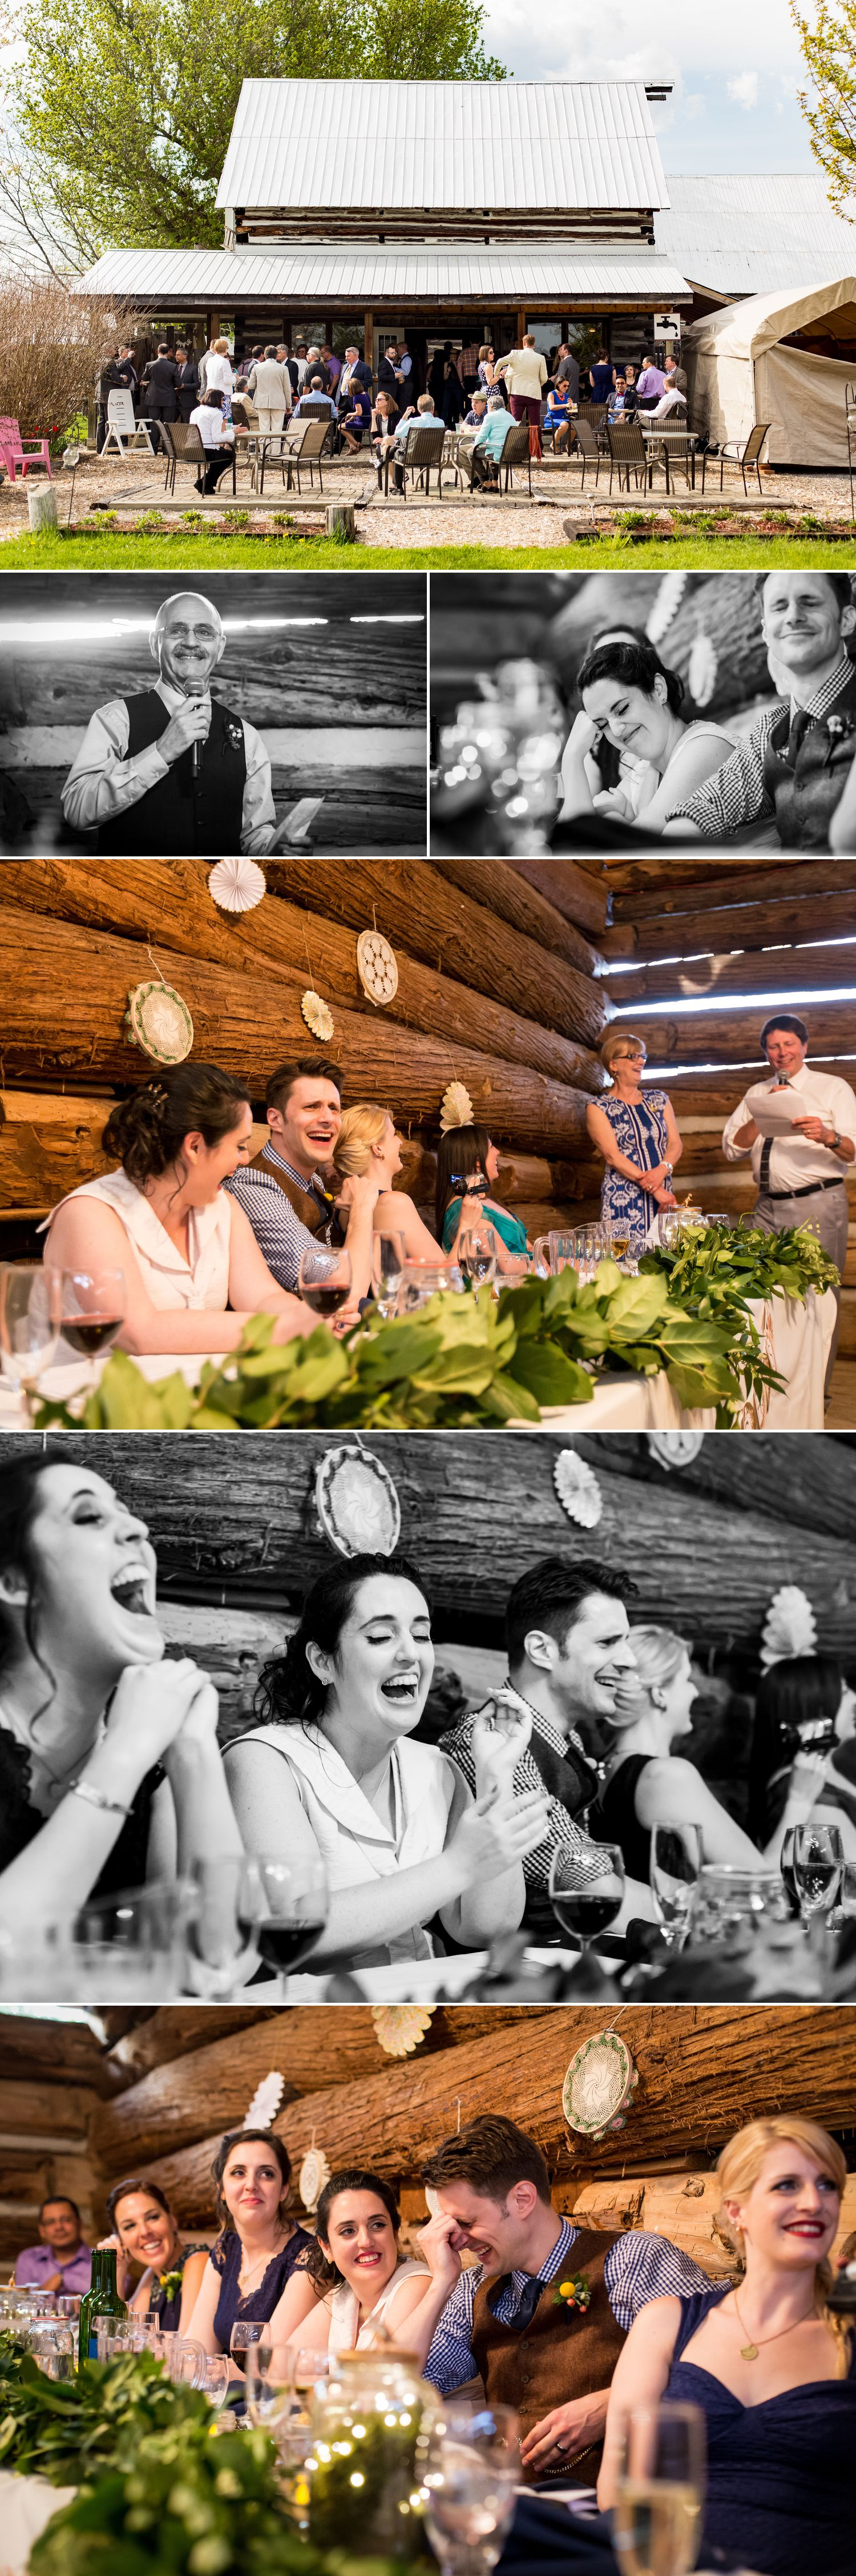 The bride and groom enjoying speeches during their wedding reception at The Herb Garden in Almonte